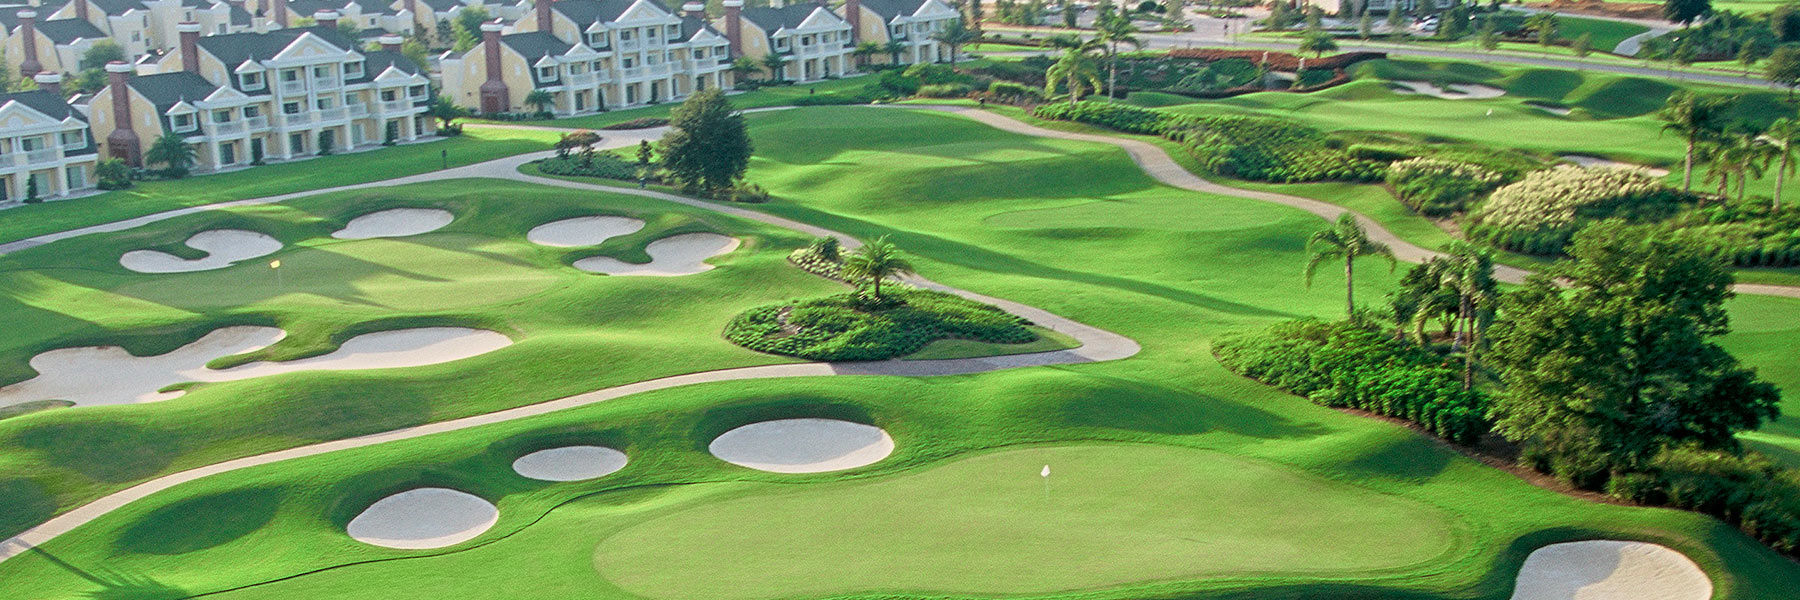 Golf Vacation Package - Reunion Summer Blow-Out Special at $189 per person, per day!